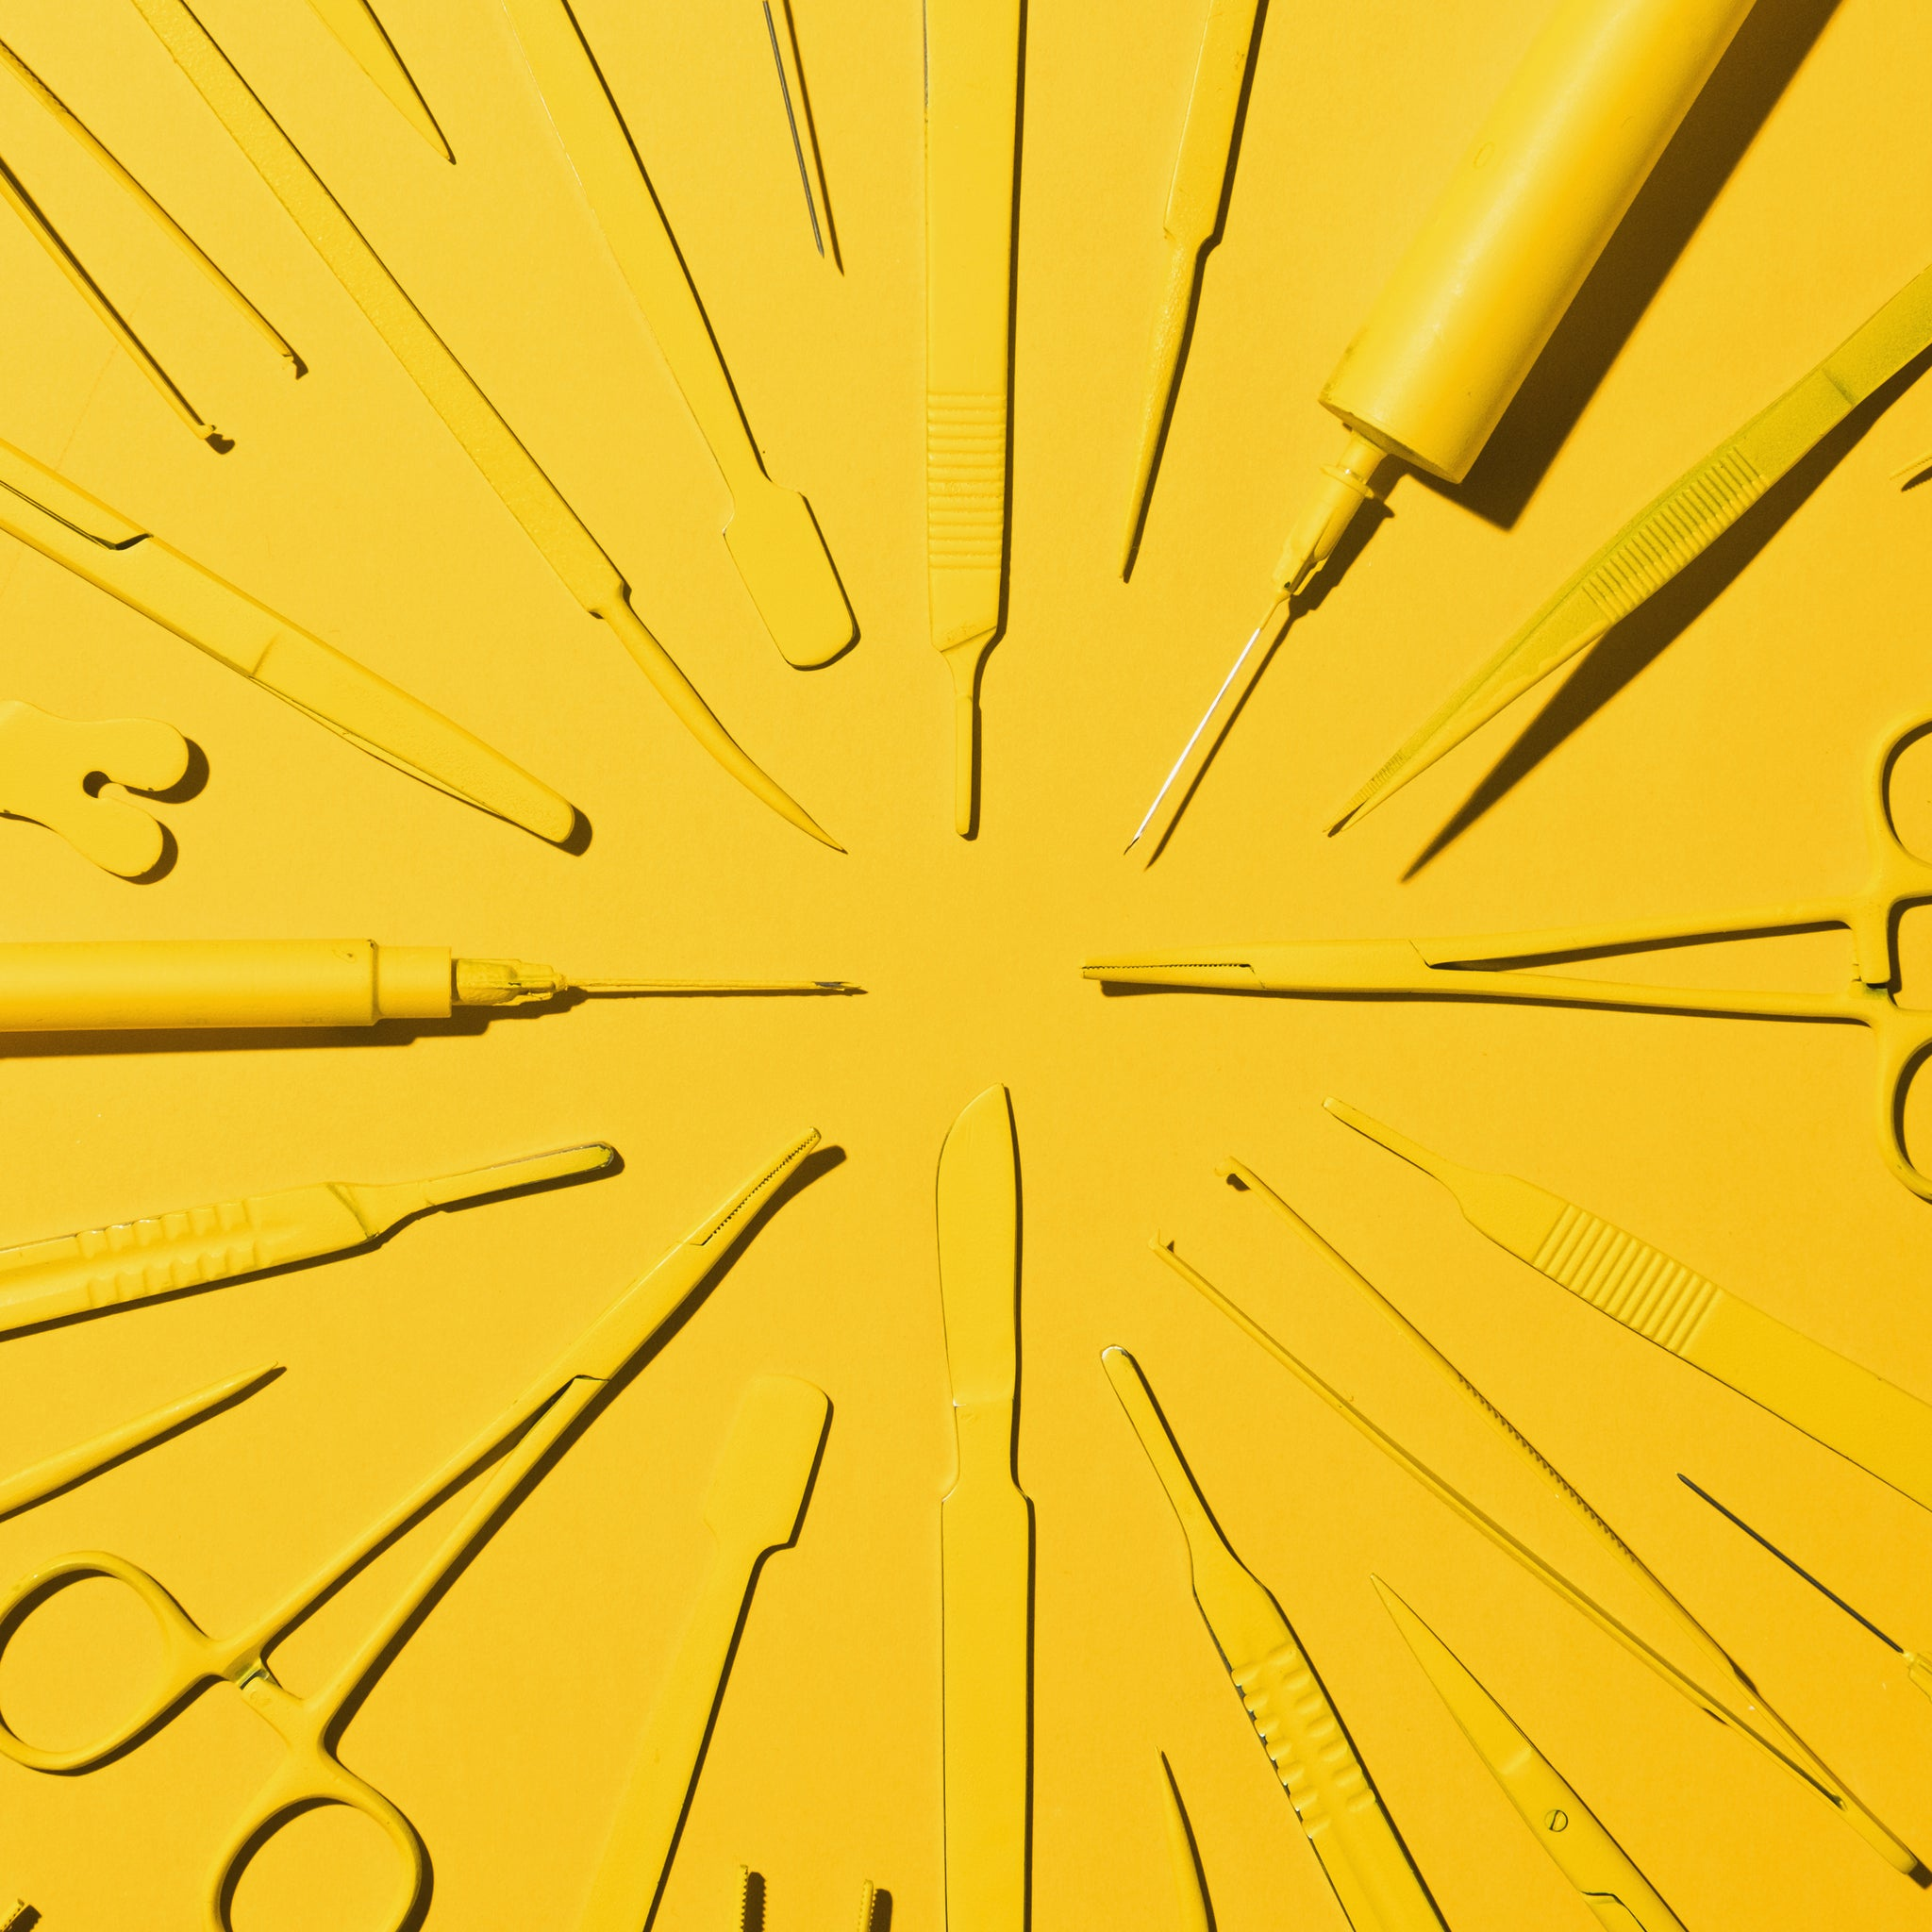 Bright yellow medical tools on a bright yellow background